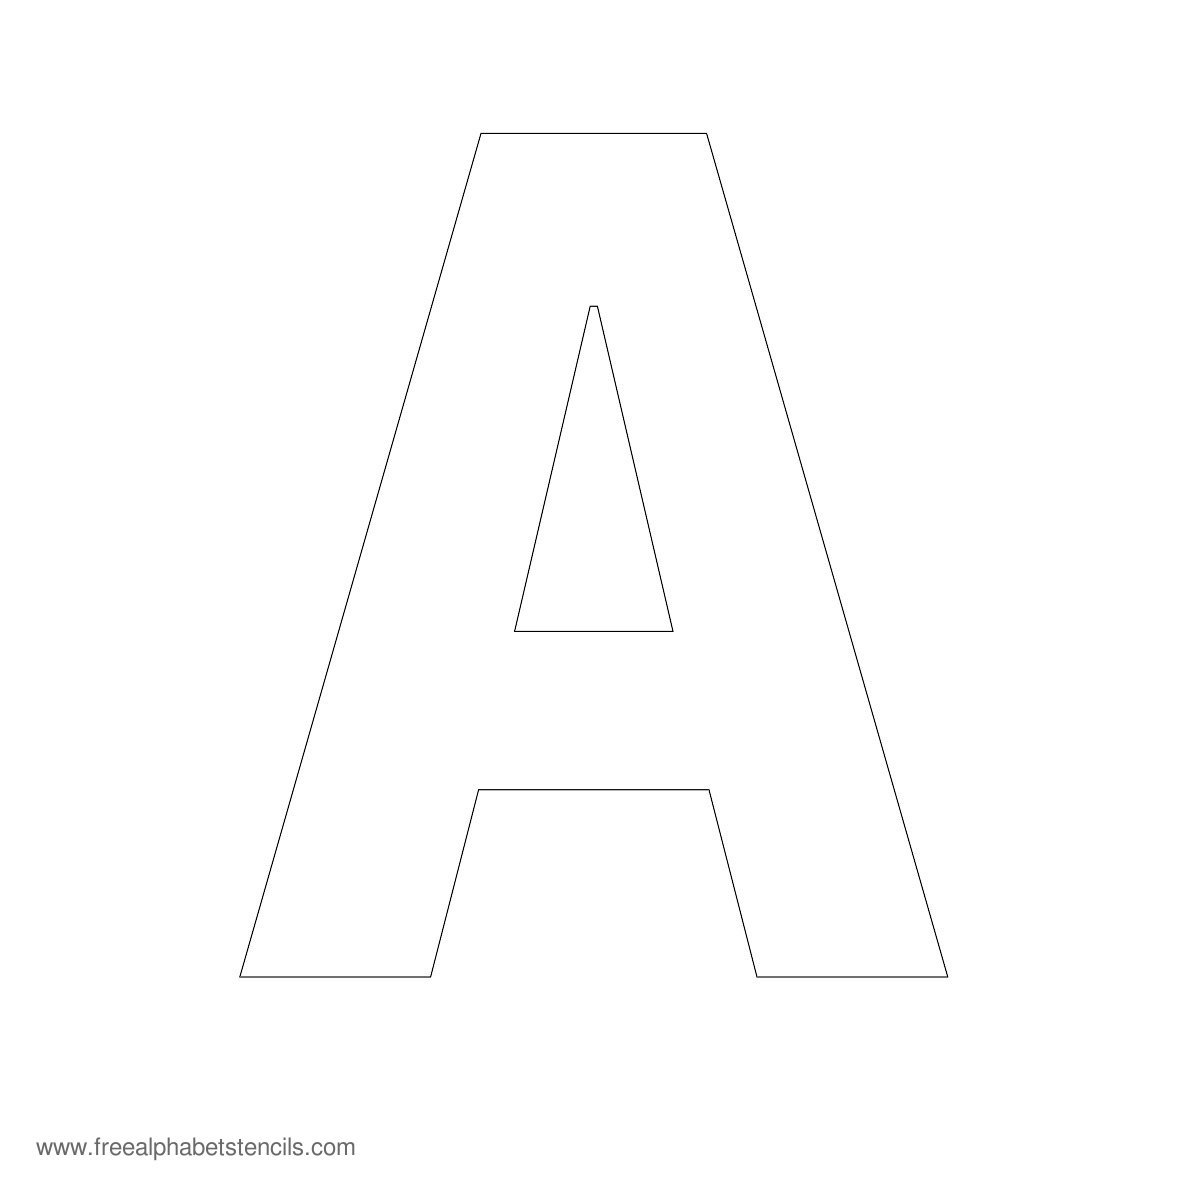 5 Images of Large Alphabet Letters Printable Stencils